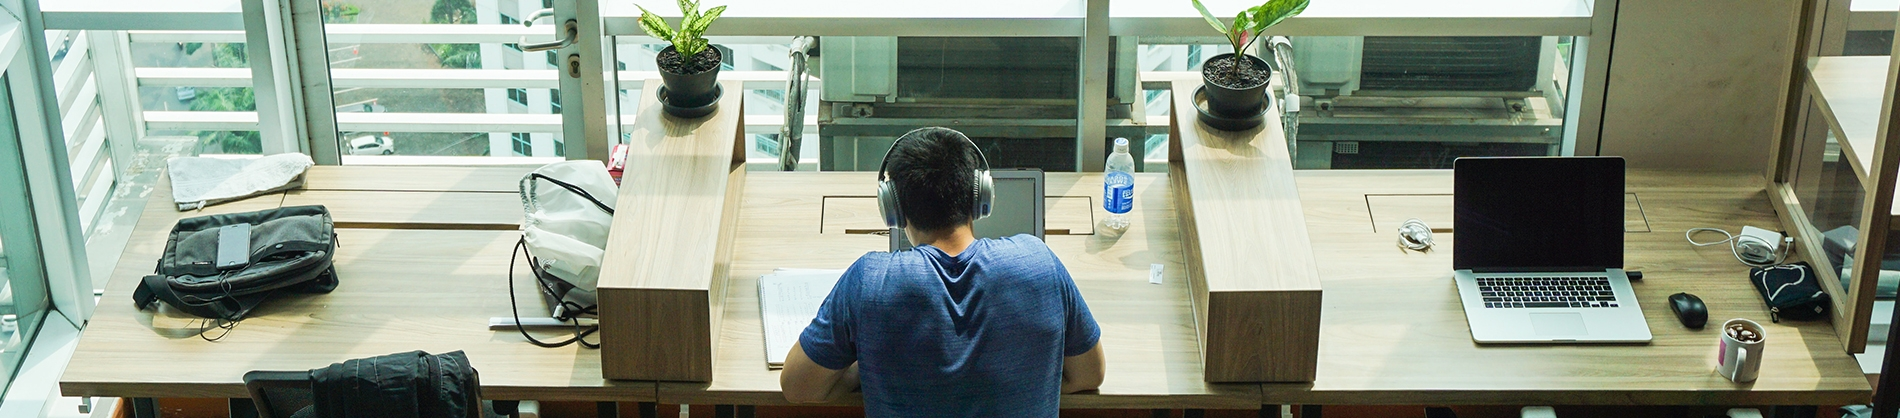 A man sat at a wooden desk with headphones on working